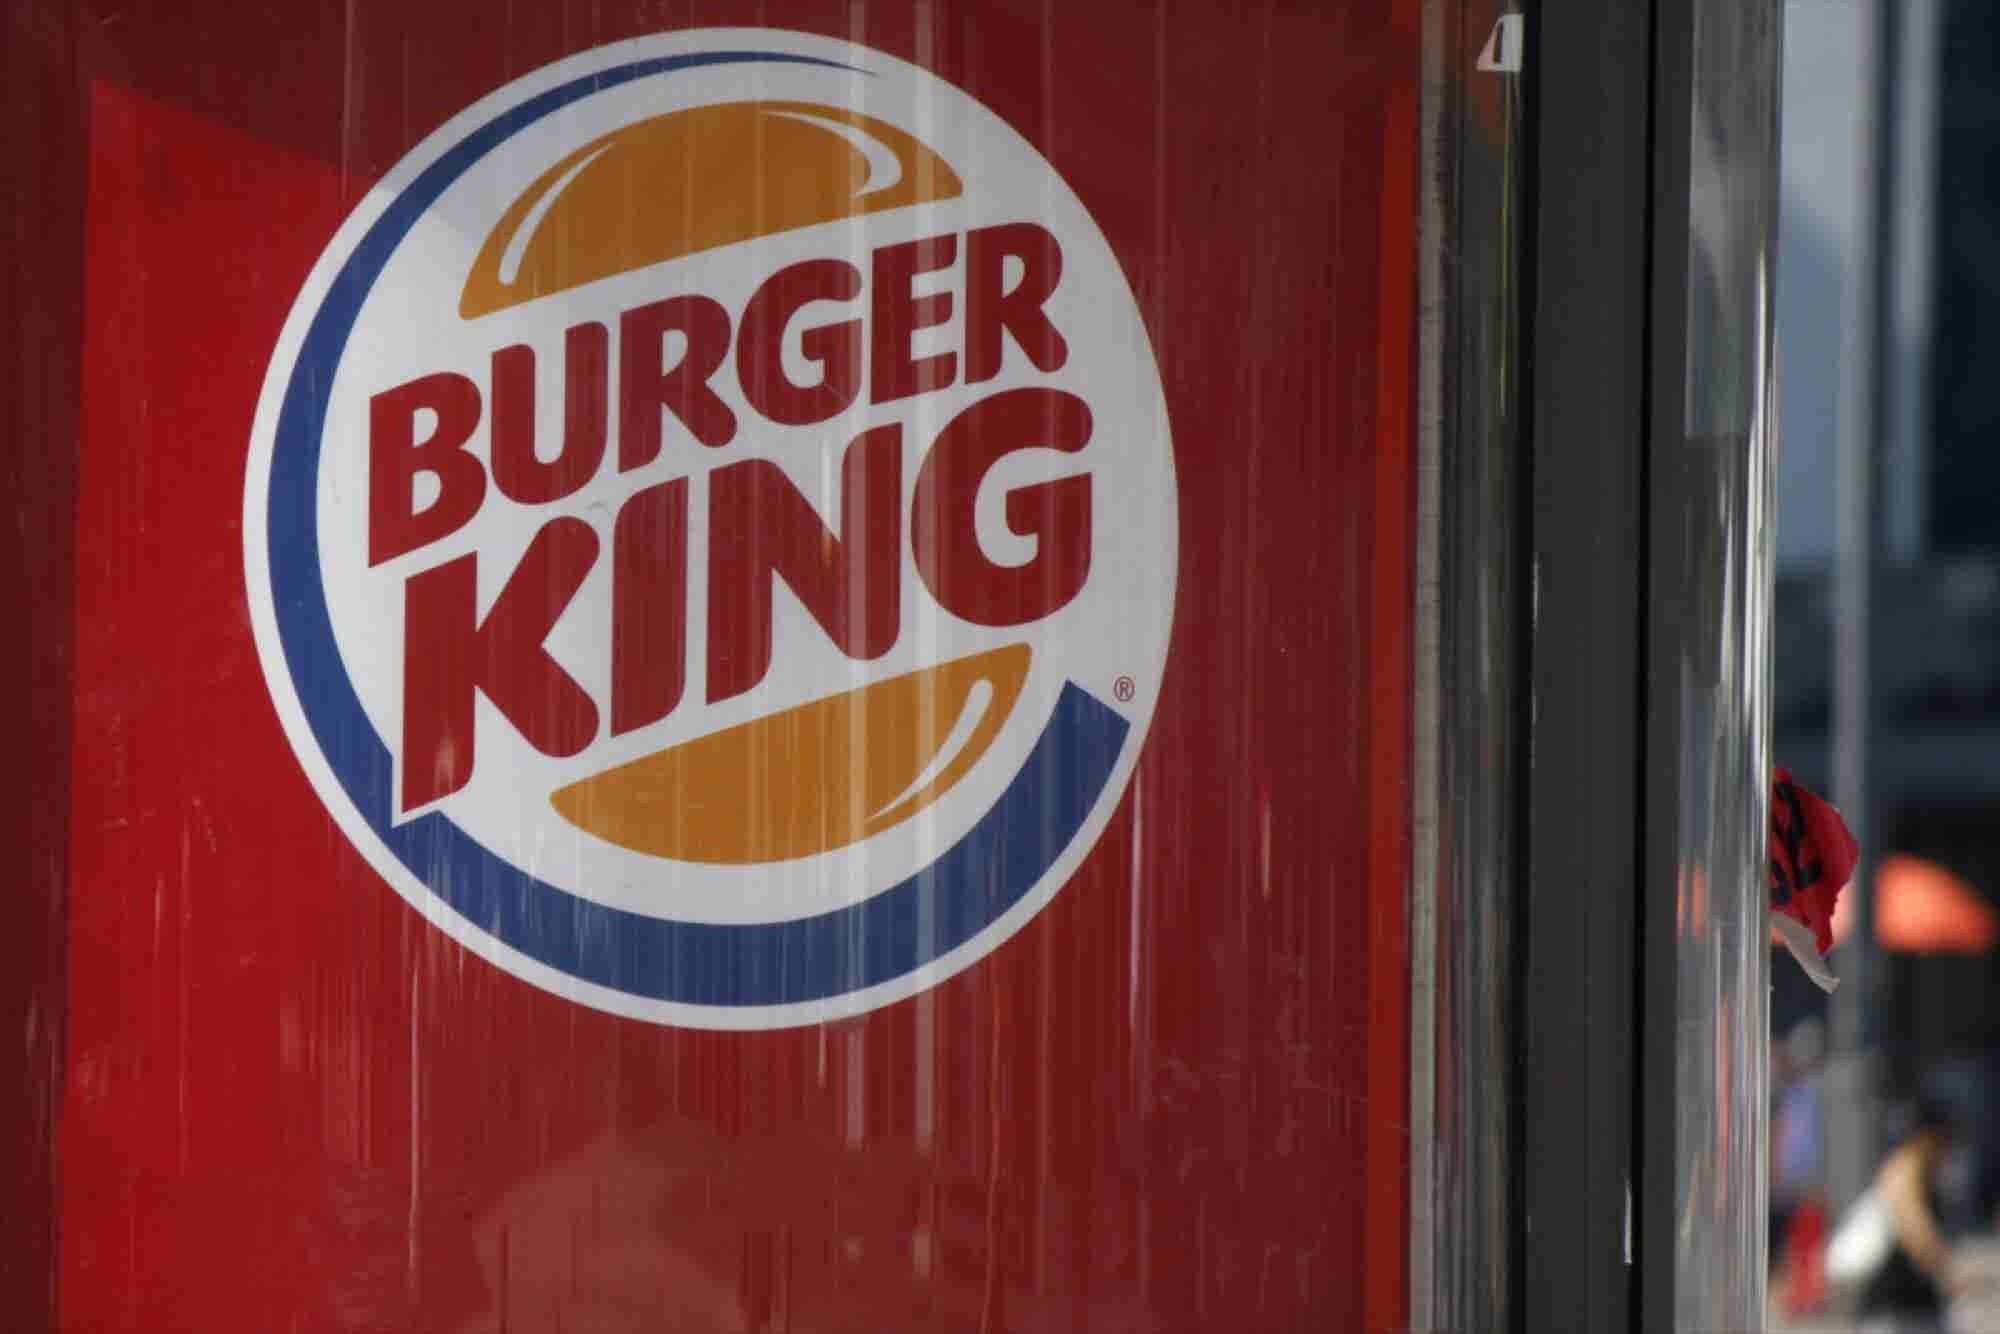 Burger King Makes Real Life Monarch Mad With New Ad